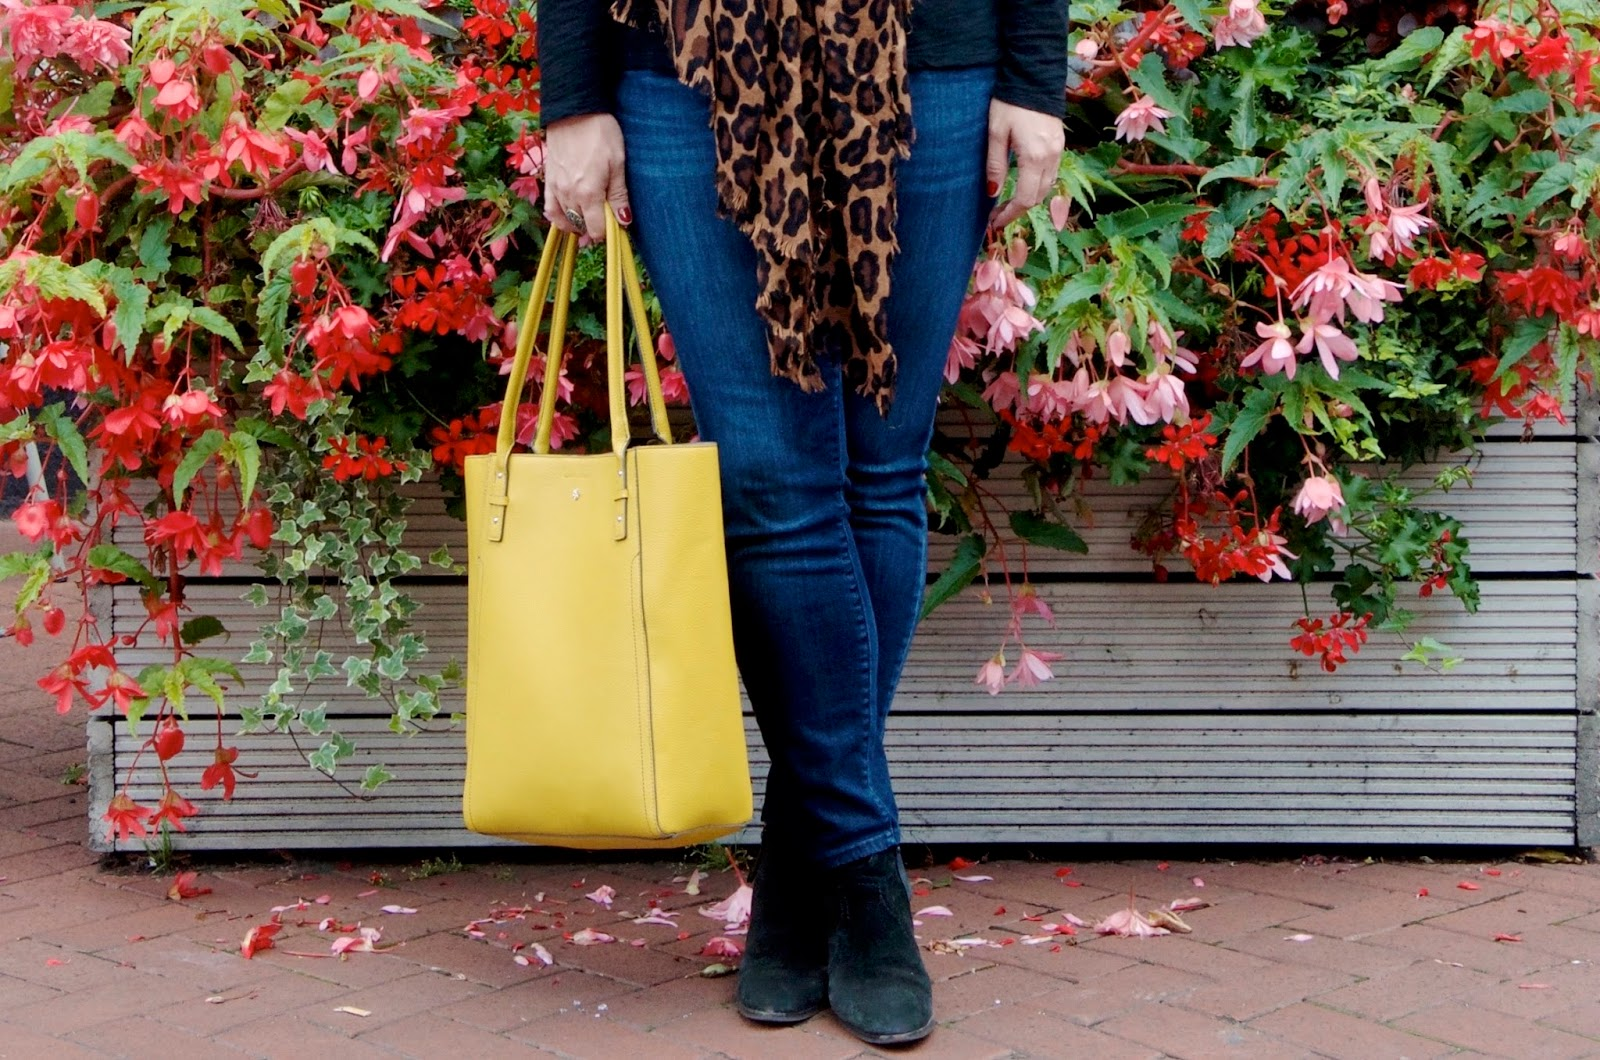 Pink and red flowers and yellow leather tote